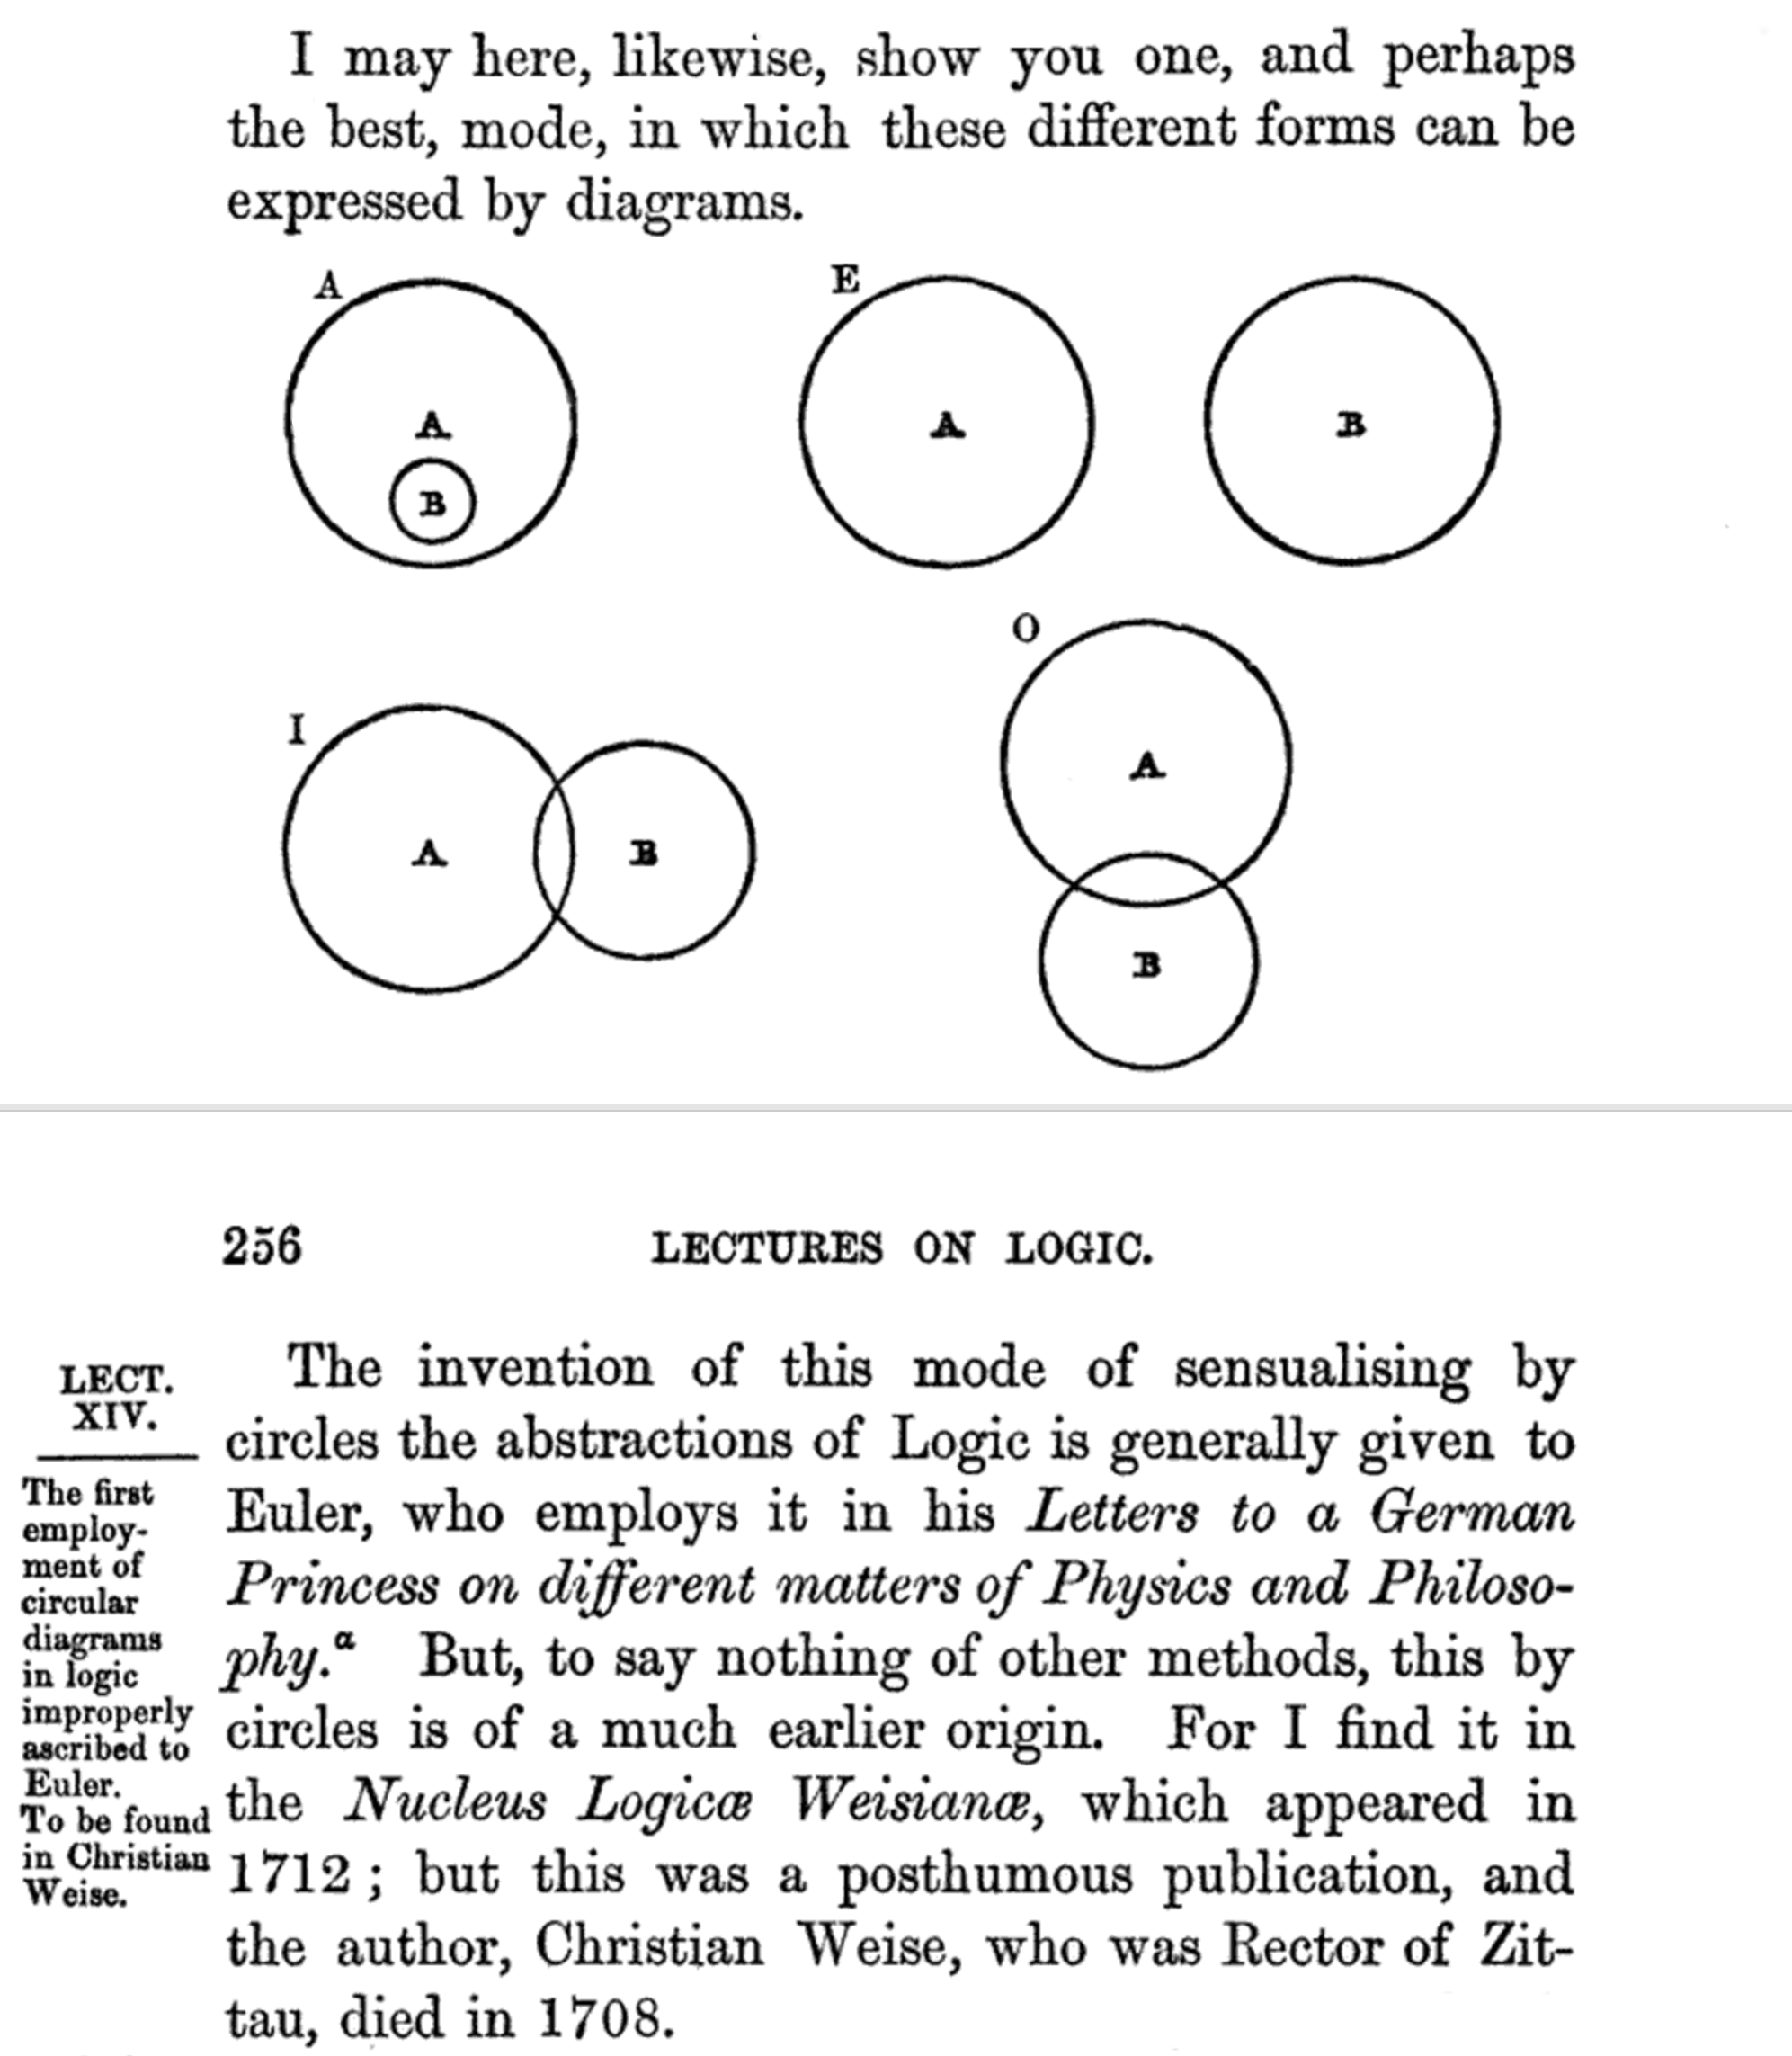 hight resolution of file hamilton lectures on logic 1874 euler diagrams png wikipedia file hamilton lectures on logic 1874